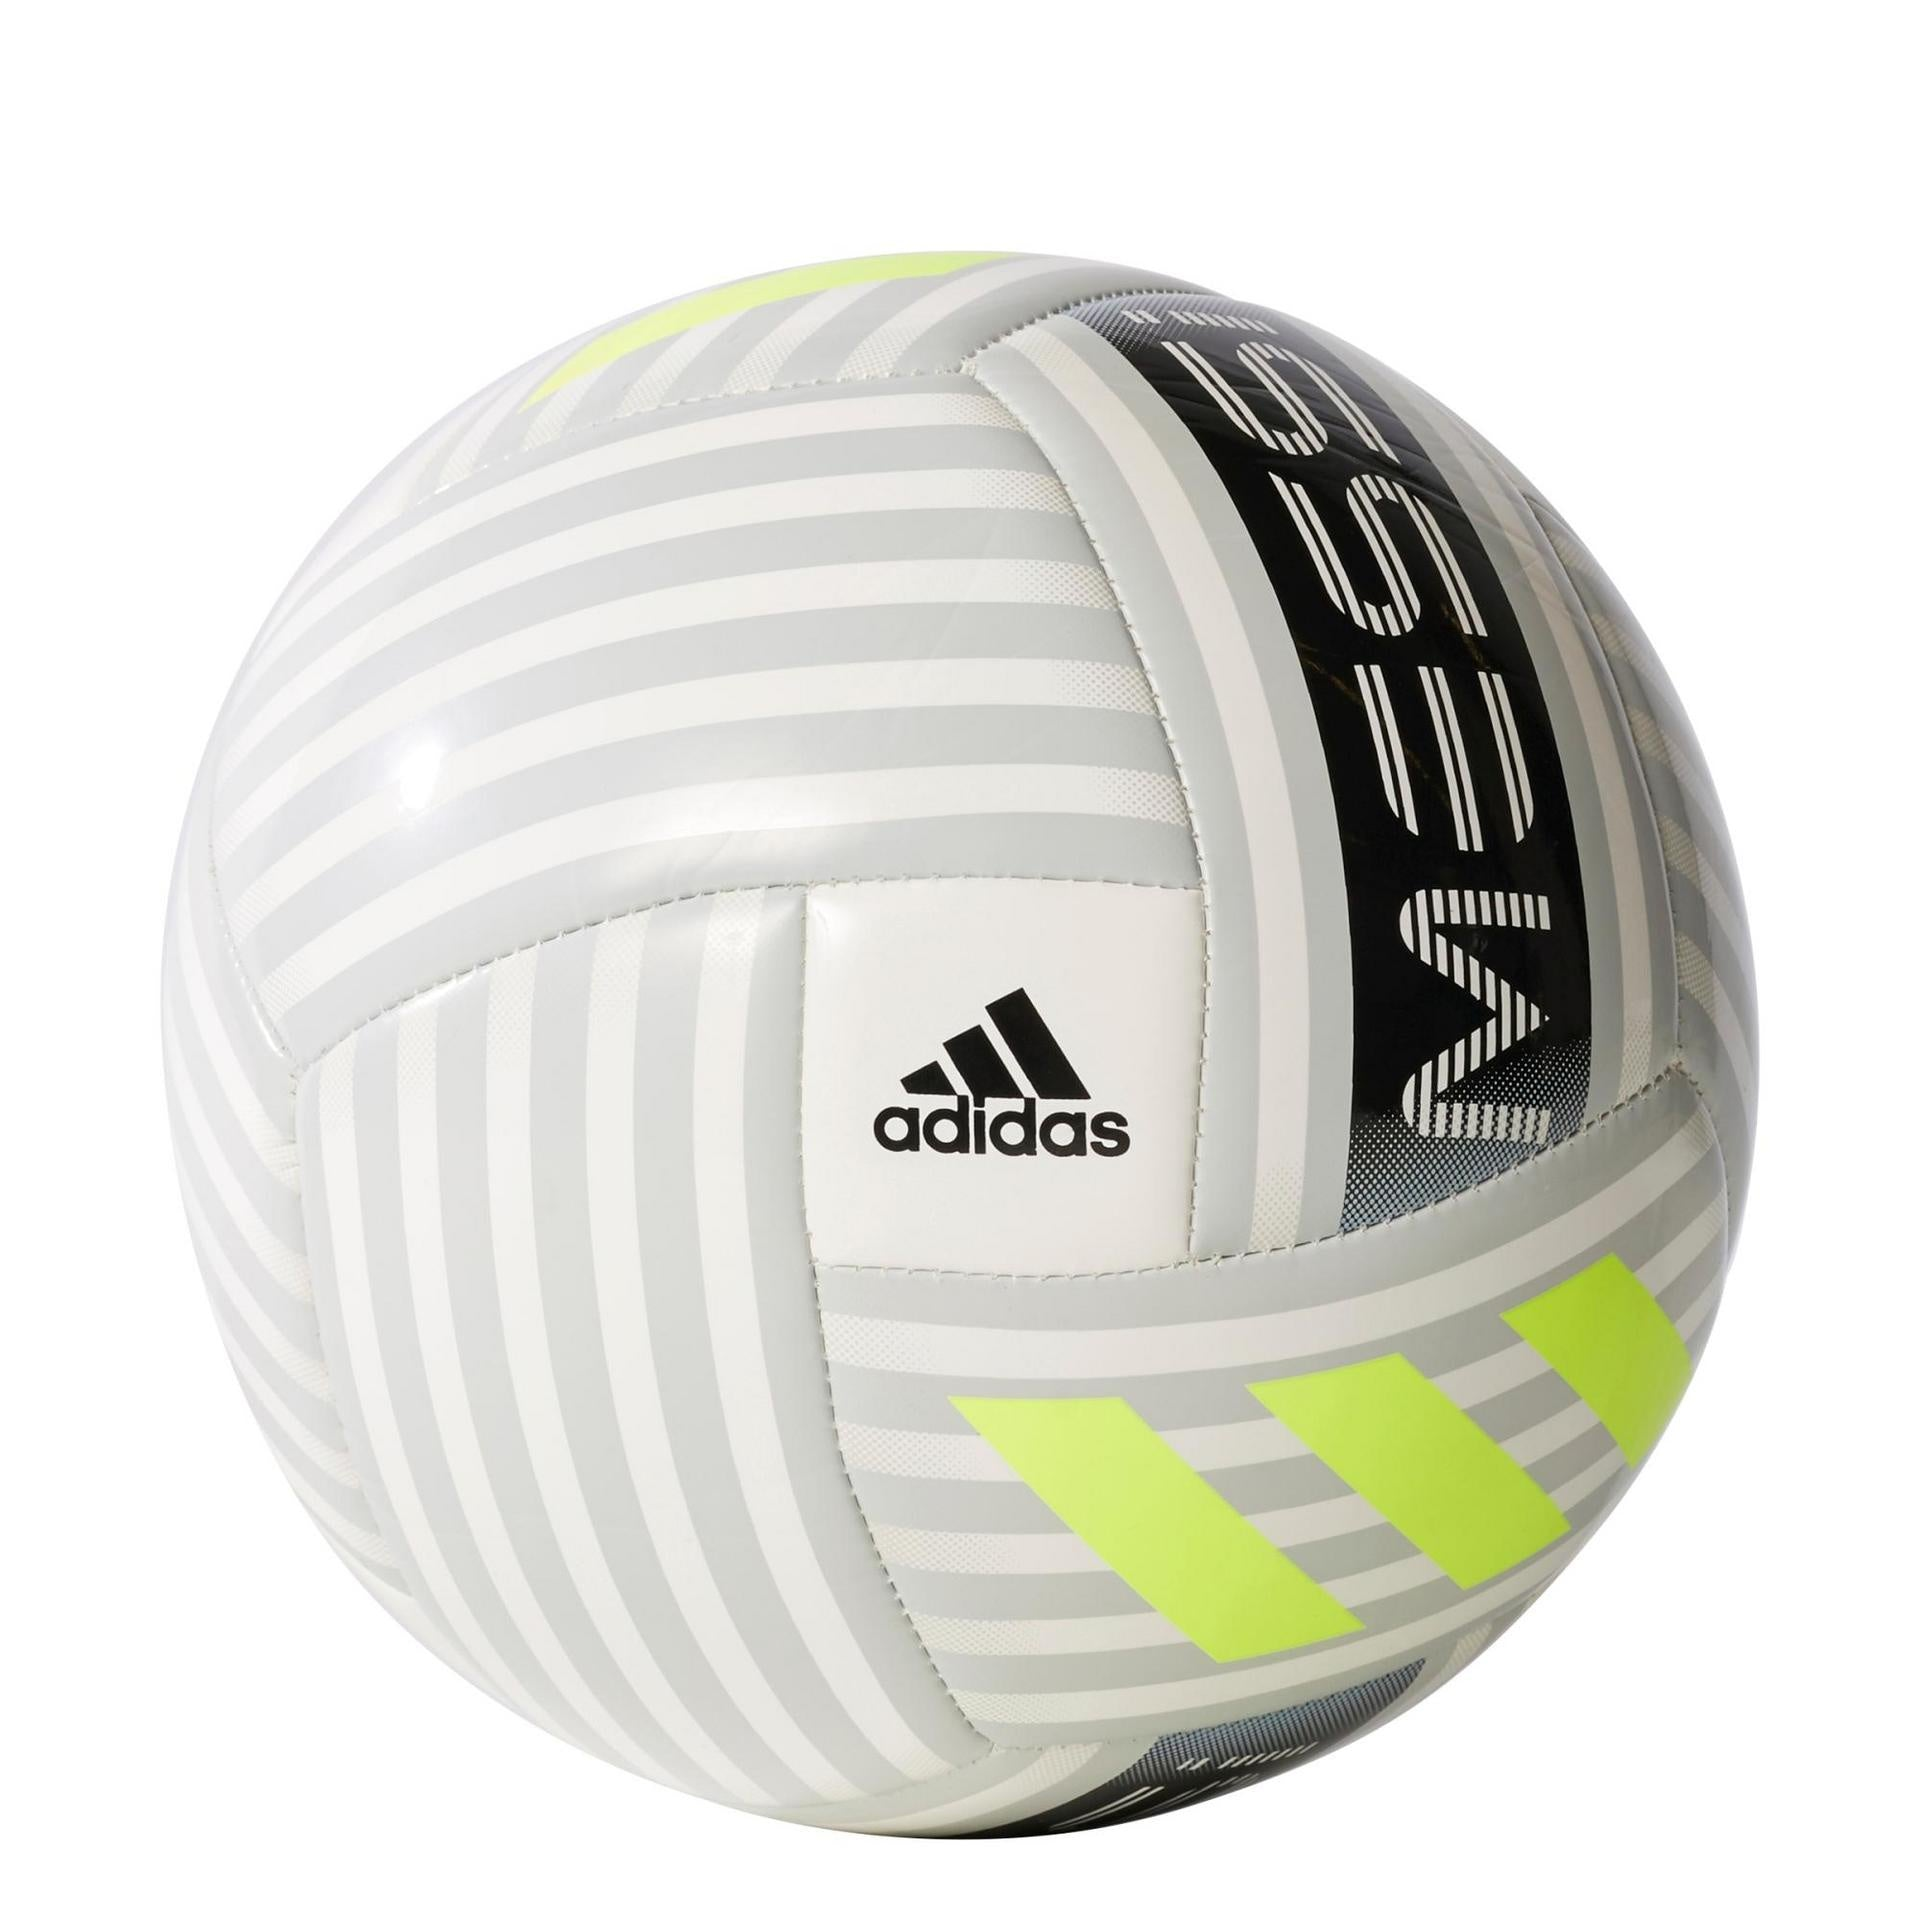 Adidas Messi Glider White/Black